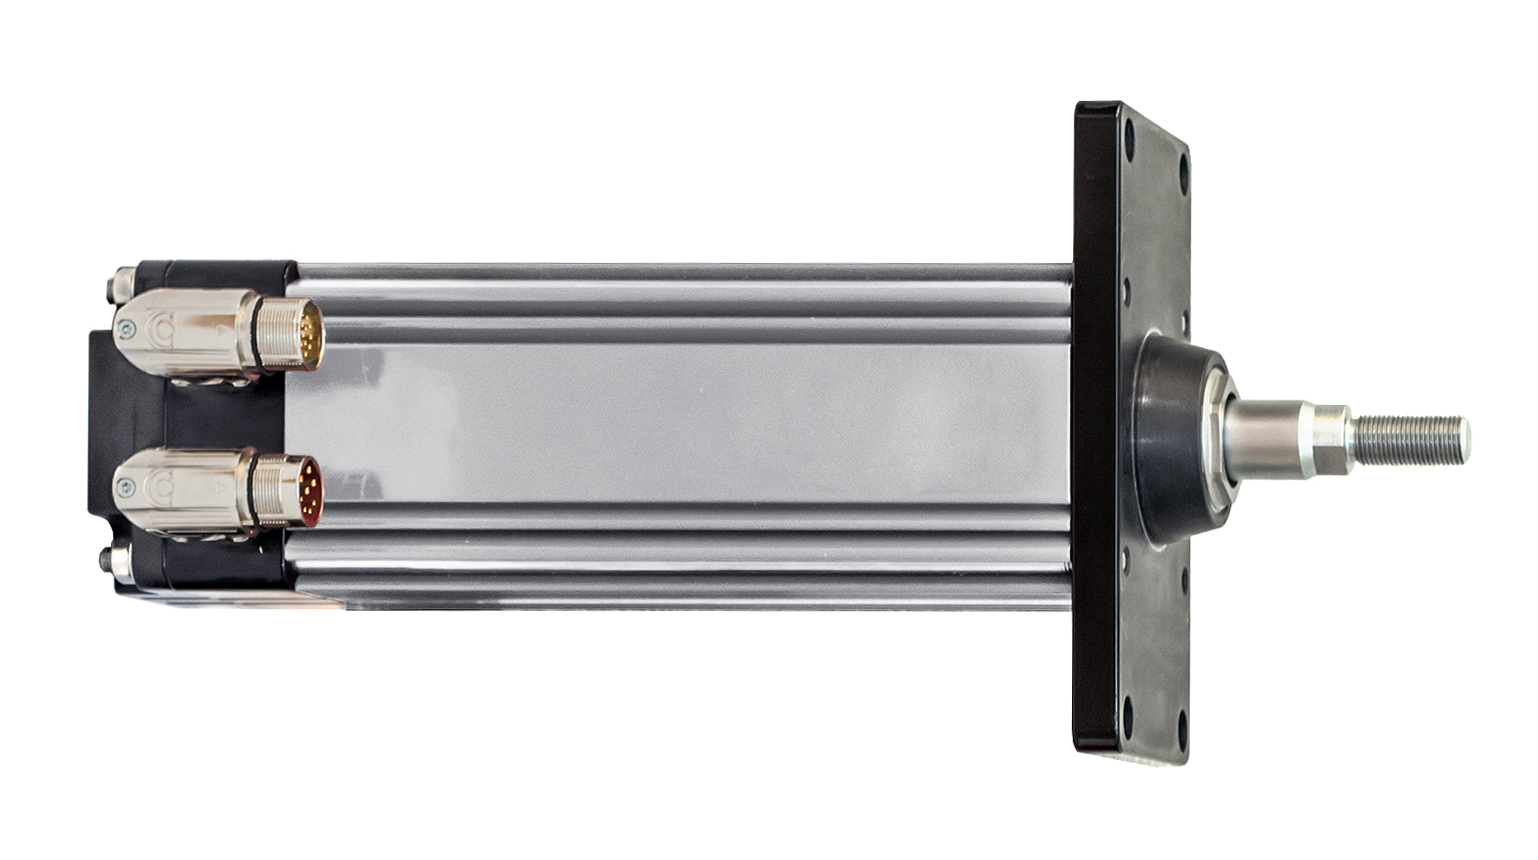 Roller screw actuators bring increased reliability to heavy duty applications